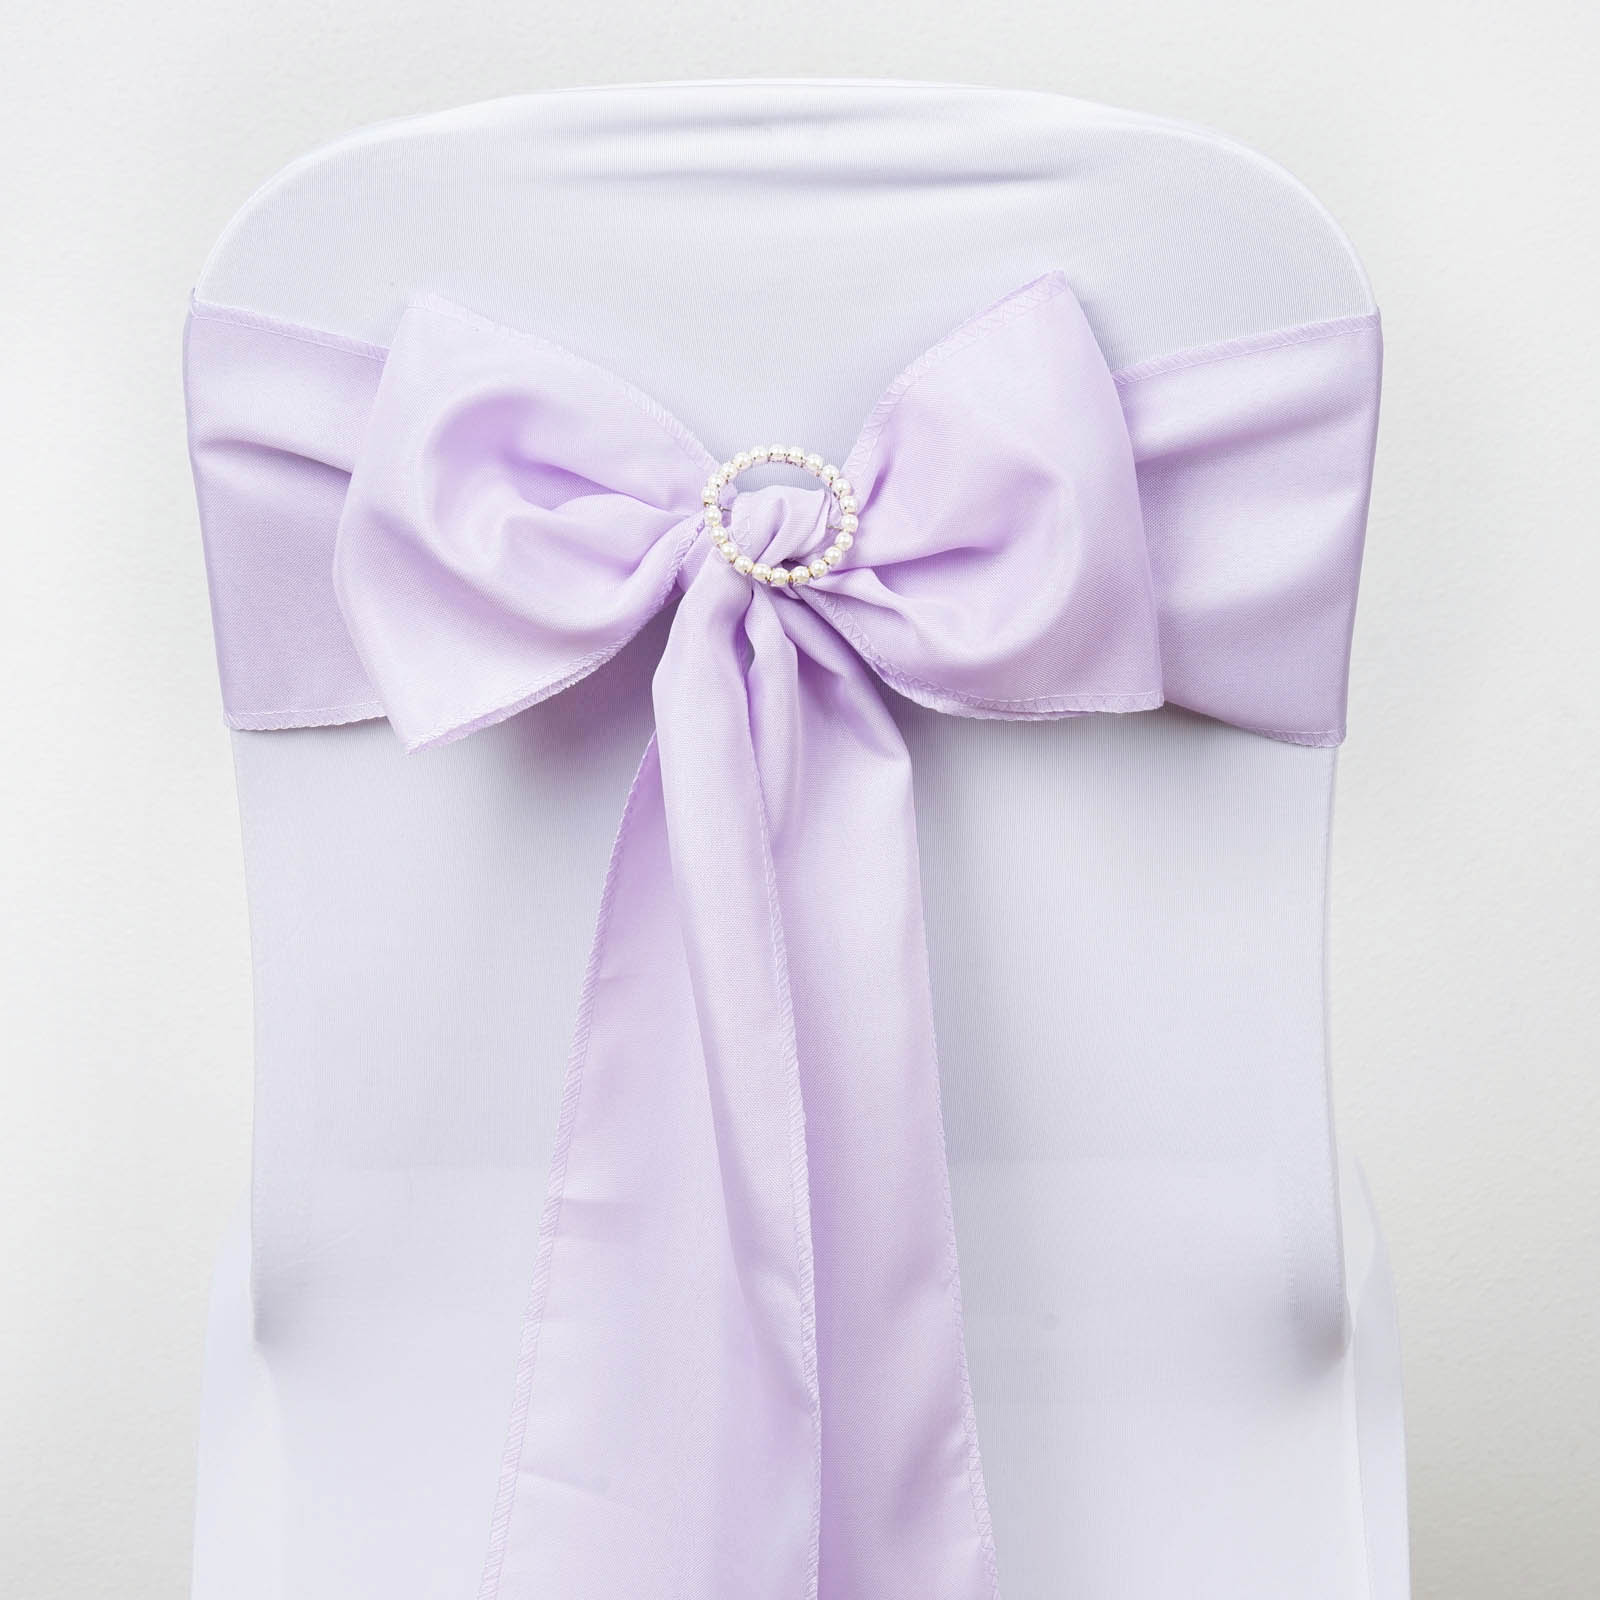 Chair Sashes For Sale 20 Polyester Chair Sashes Ties Bows Wedding Party Ceremony